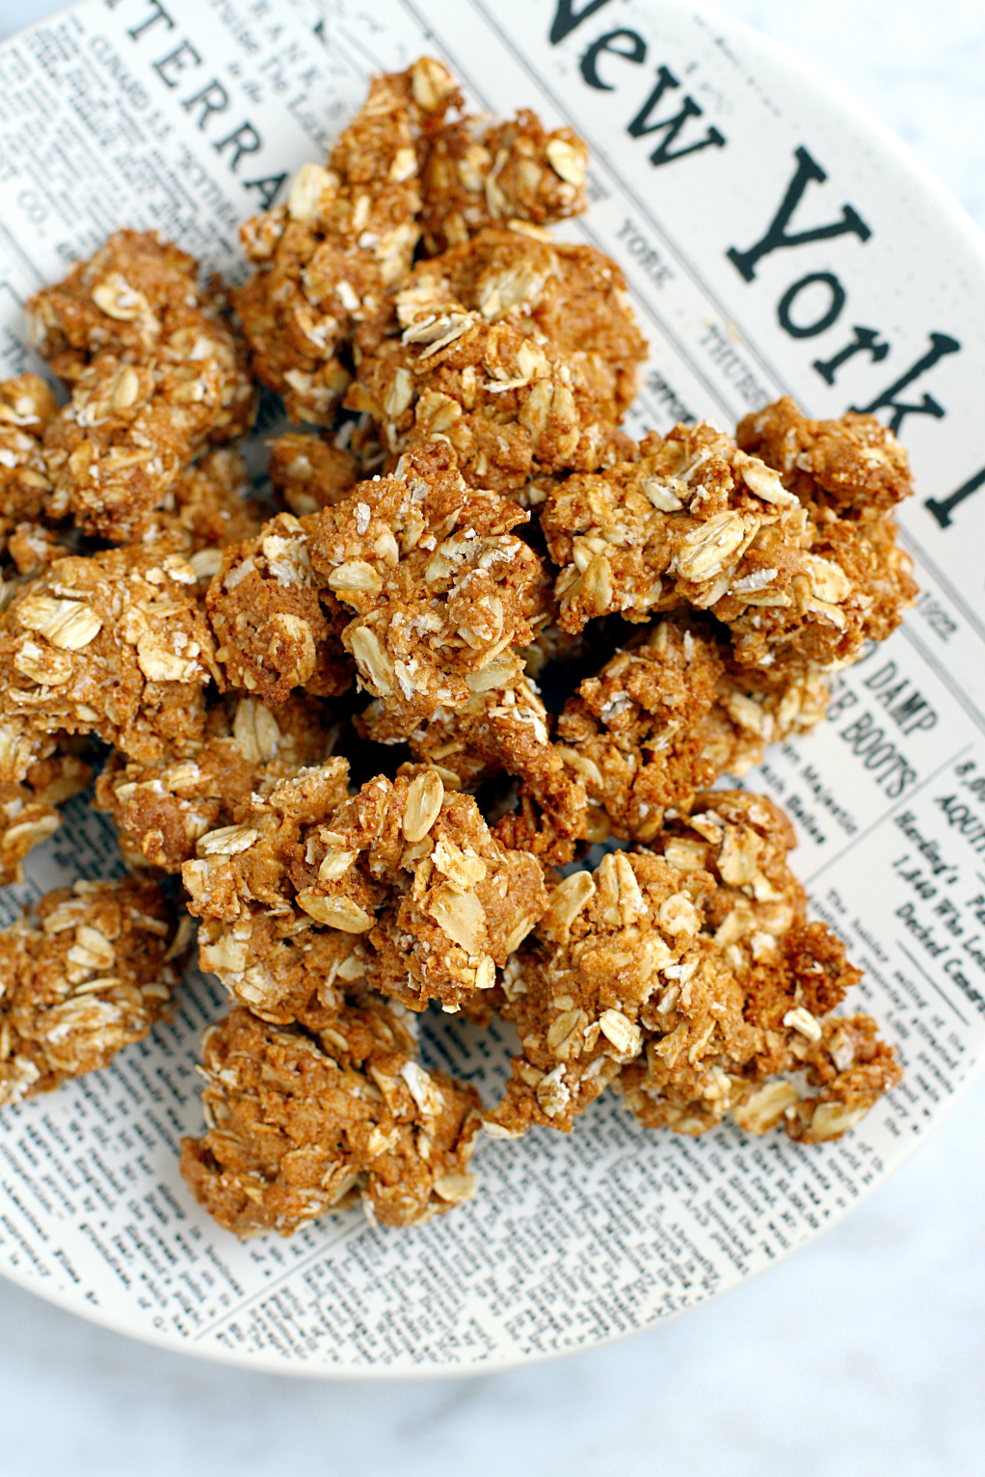 Close-up image of gluten-free peanut butter cookie granola.